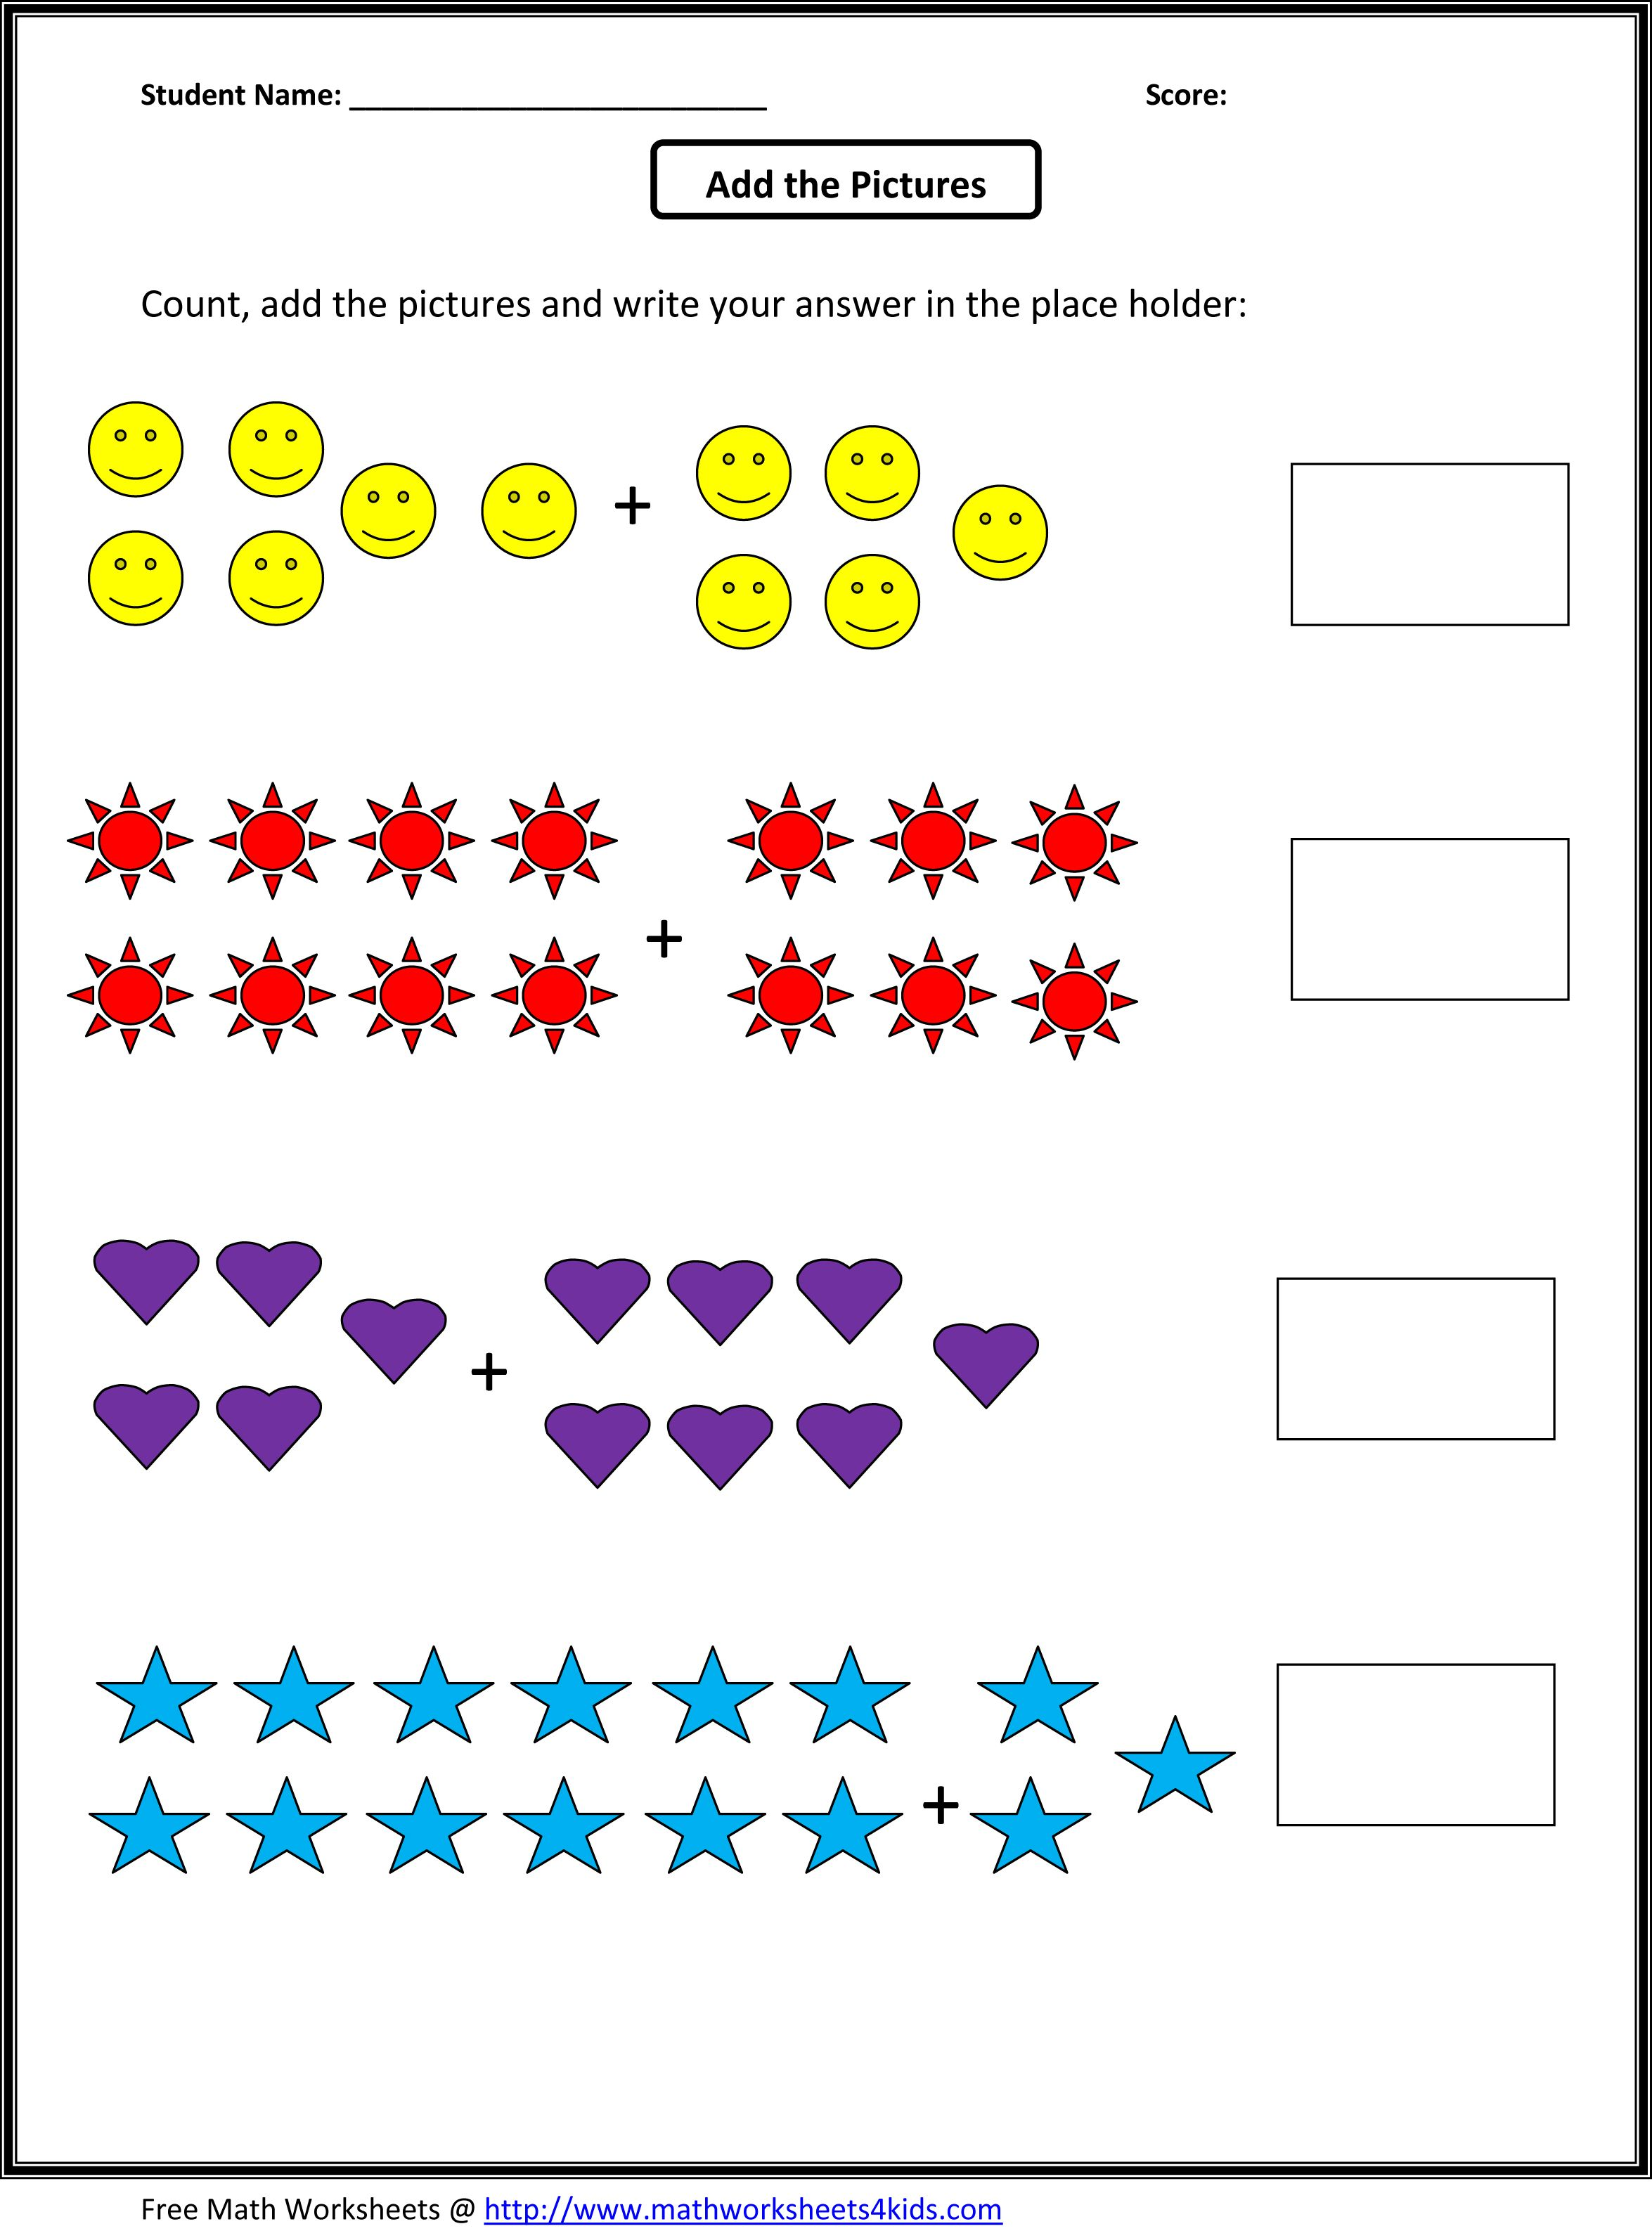 Weirdmailus  Fascinating Worksheet For Math Grade   Coffemix With Inspiring  Images About School On Pinterest  Mental Maths Worksheets  With Delectable Body Language Worksheets Also Th Grade Worksheets Printable In Addition Climate Worksheets And Physical Features Of Europe Worksheet As Well As Complex Fraction Worksheet Additionally What Is An Excel Worksheet From Coffemixcom With Weirdmailus  Inspiring Worksheet For Math Grade   Coffemix With Delectable  Images About School On Pinterest  Mental Maths Worksheets  And Fascinating Body Language Worksheets Also Th Grade Worksheets Printable In Addition Climate Worksheets From Coffemixcom